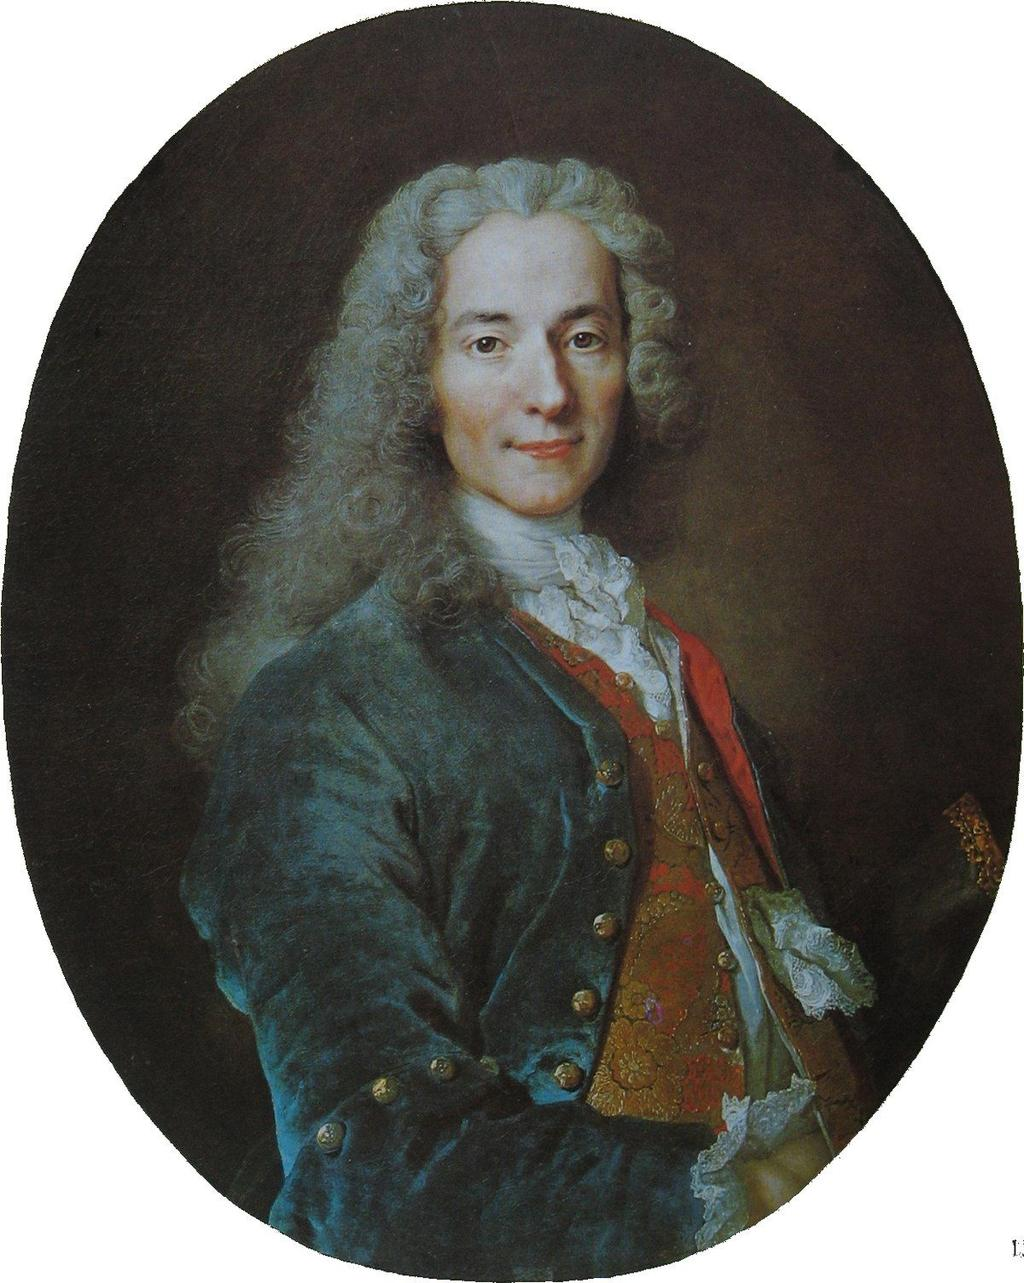 Wrote The Spirit of Laws : studied republics, monarchs, despotism Stressed: Separation of powers Balance of power Who is Voltaire? Also known as François Marie Arouet. What did he do?